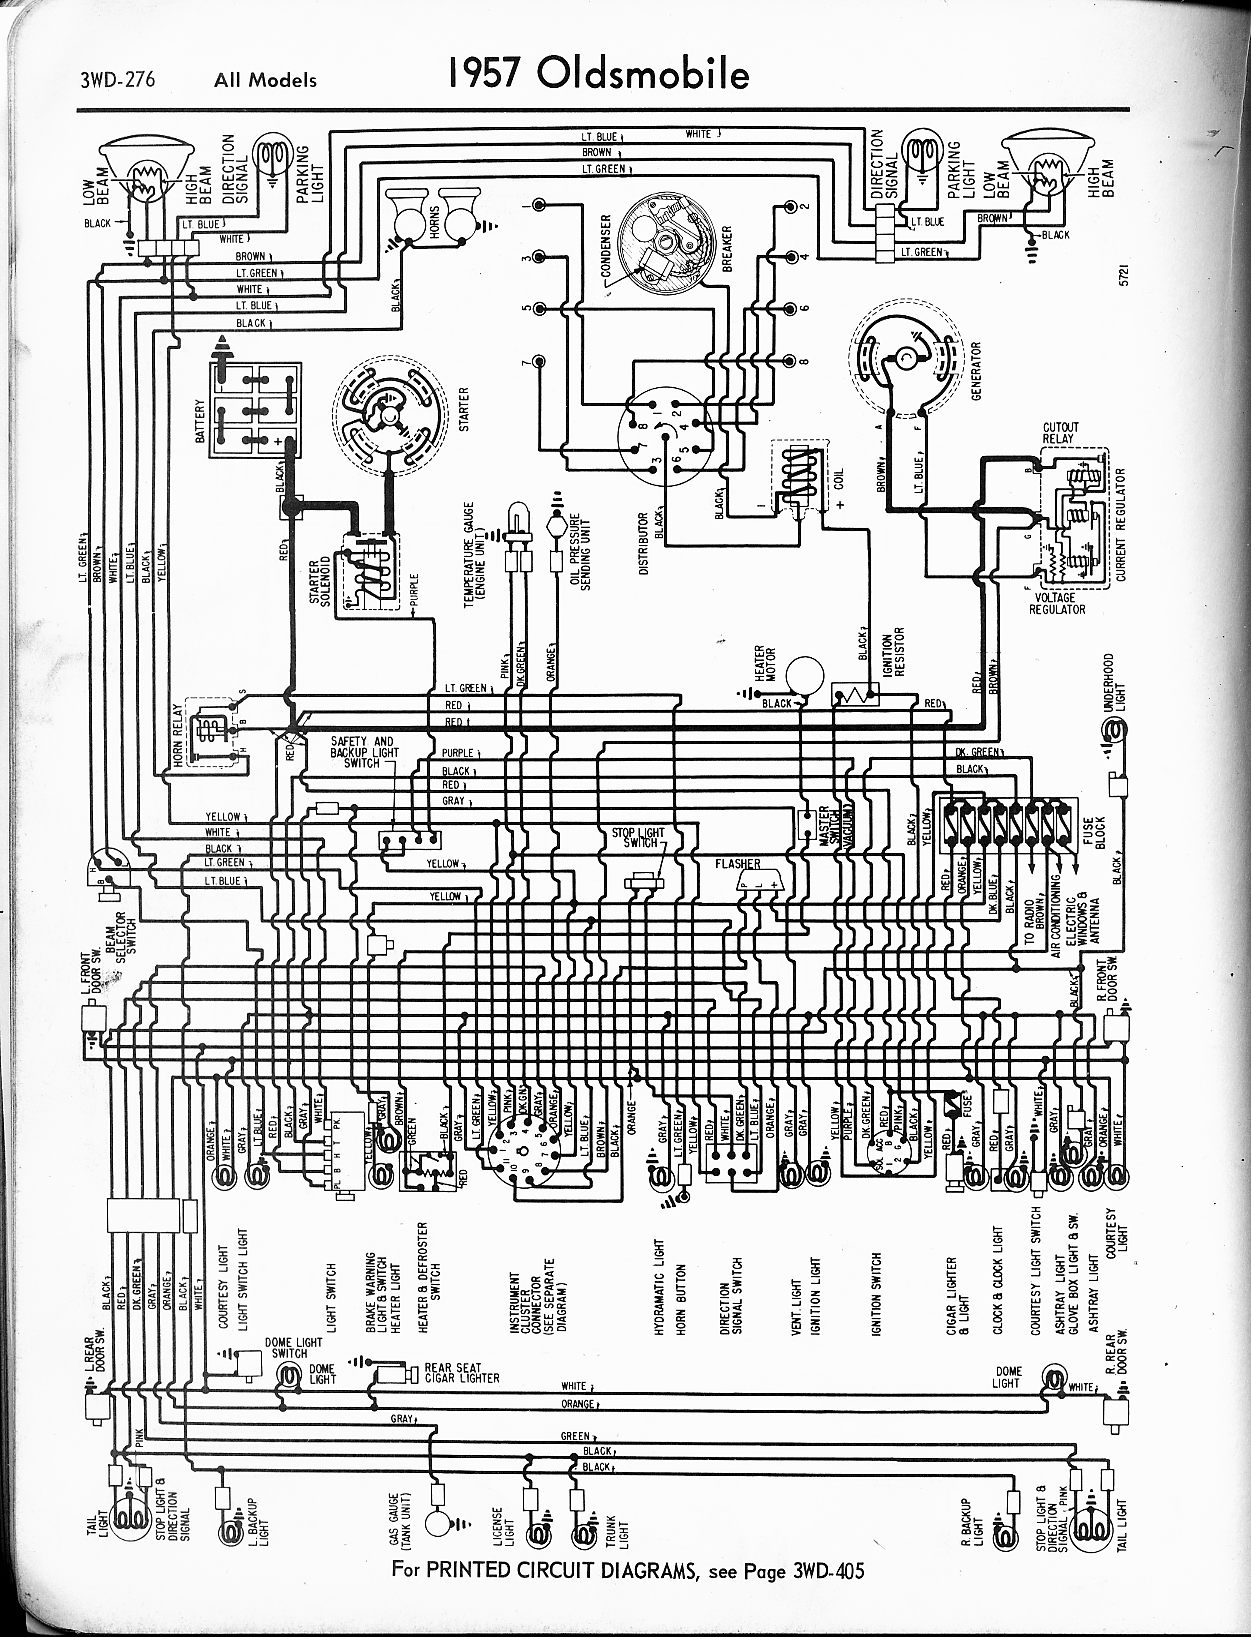 MWire5765 276 oldsmobile wiring diagrams the old car manual project 1984 oldsmobile delta 88 wiring diagram at soozxer.org